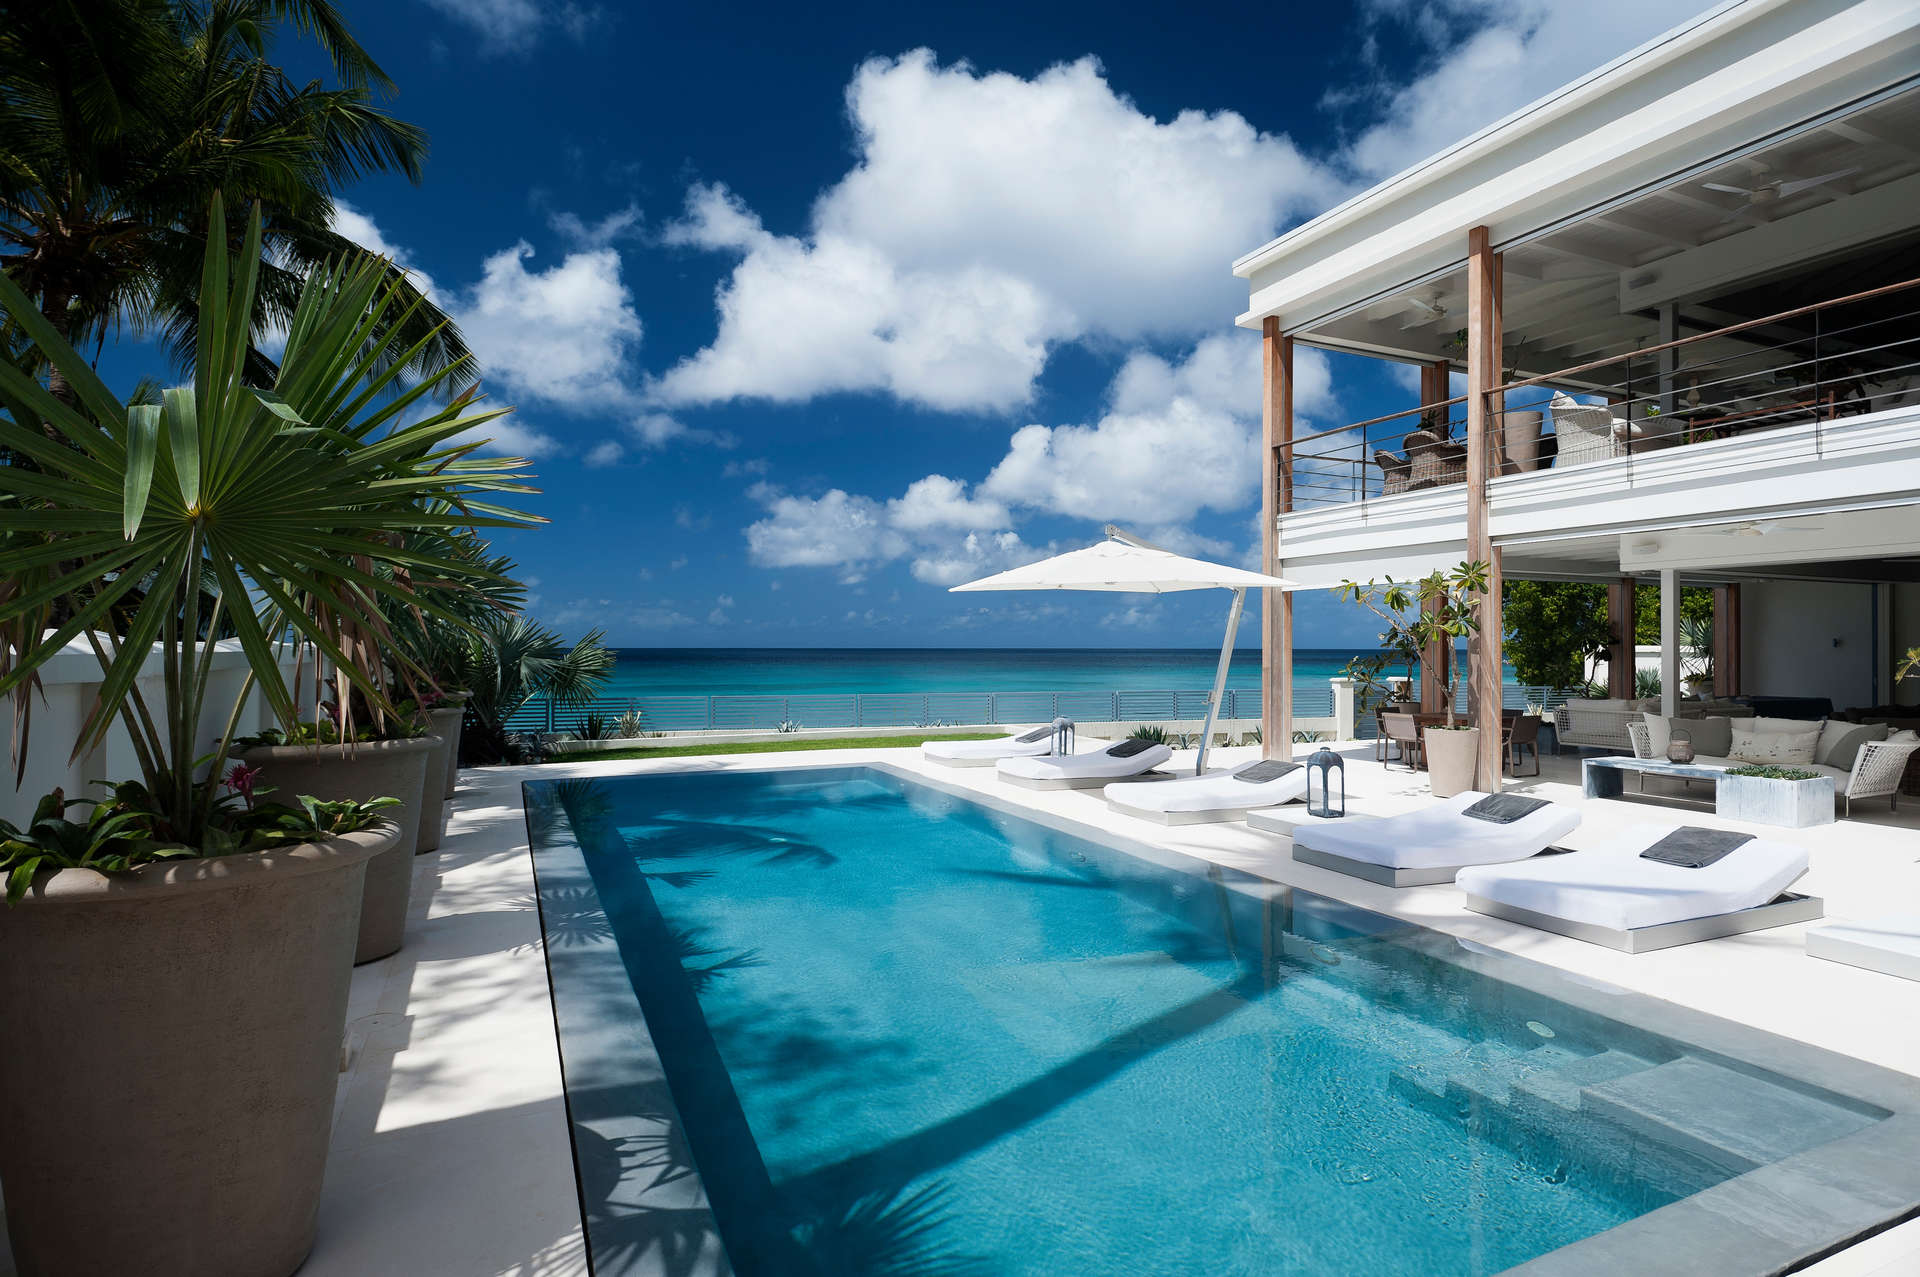 Luxury villa rentals caribbean - Barbados - St james - The garden - The Dream - Image 1/8